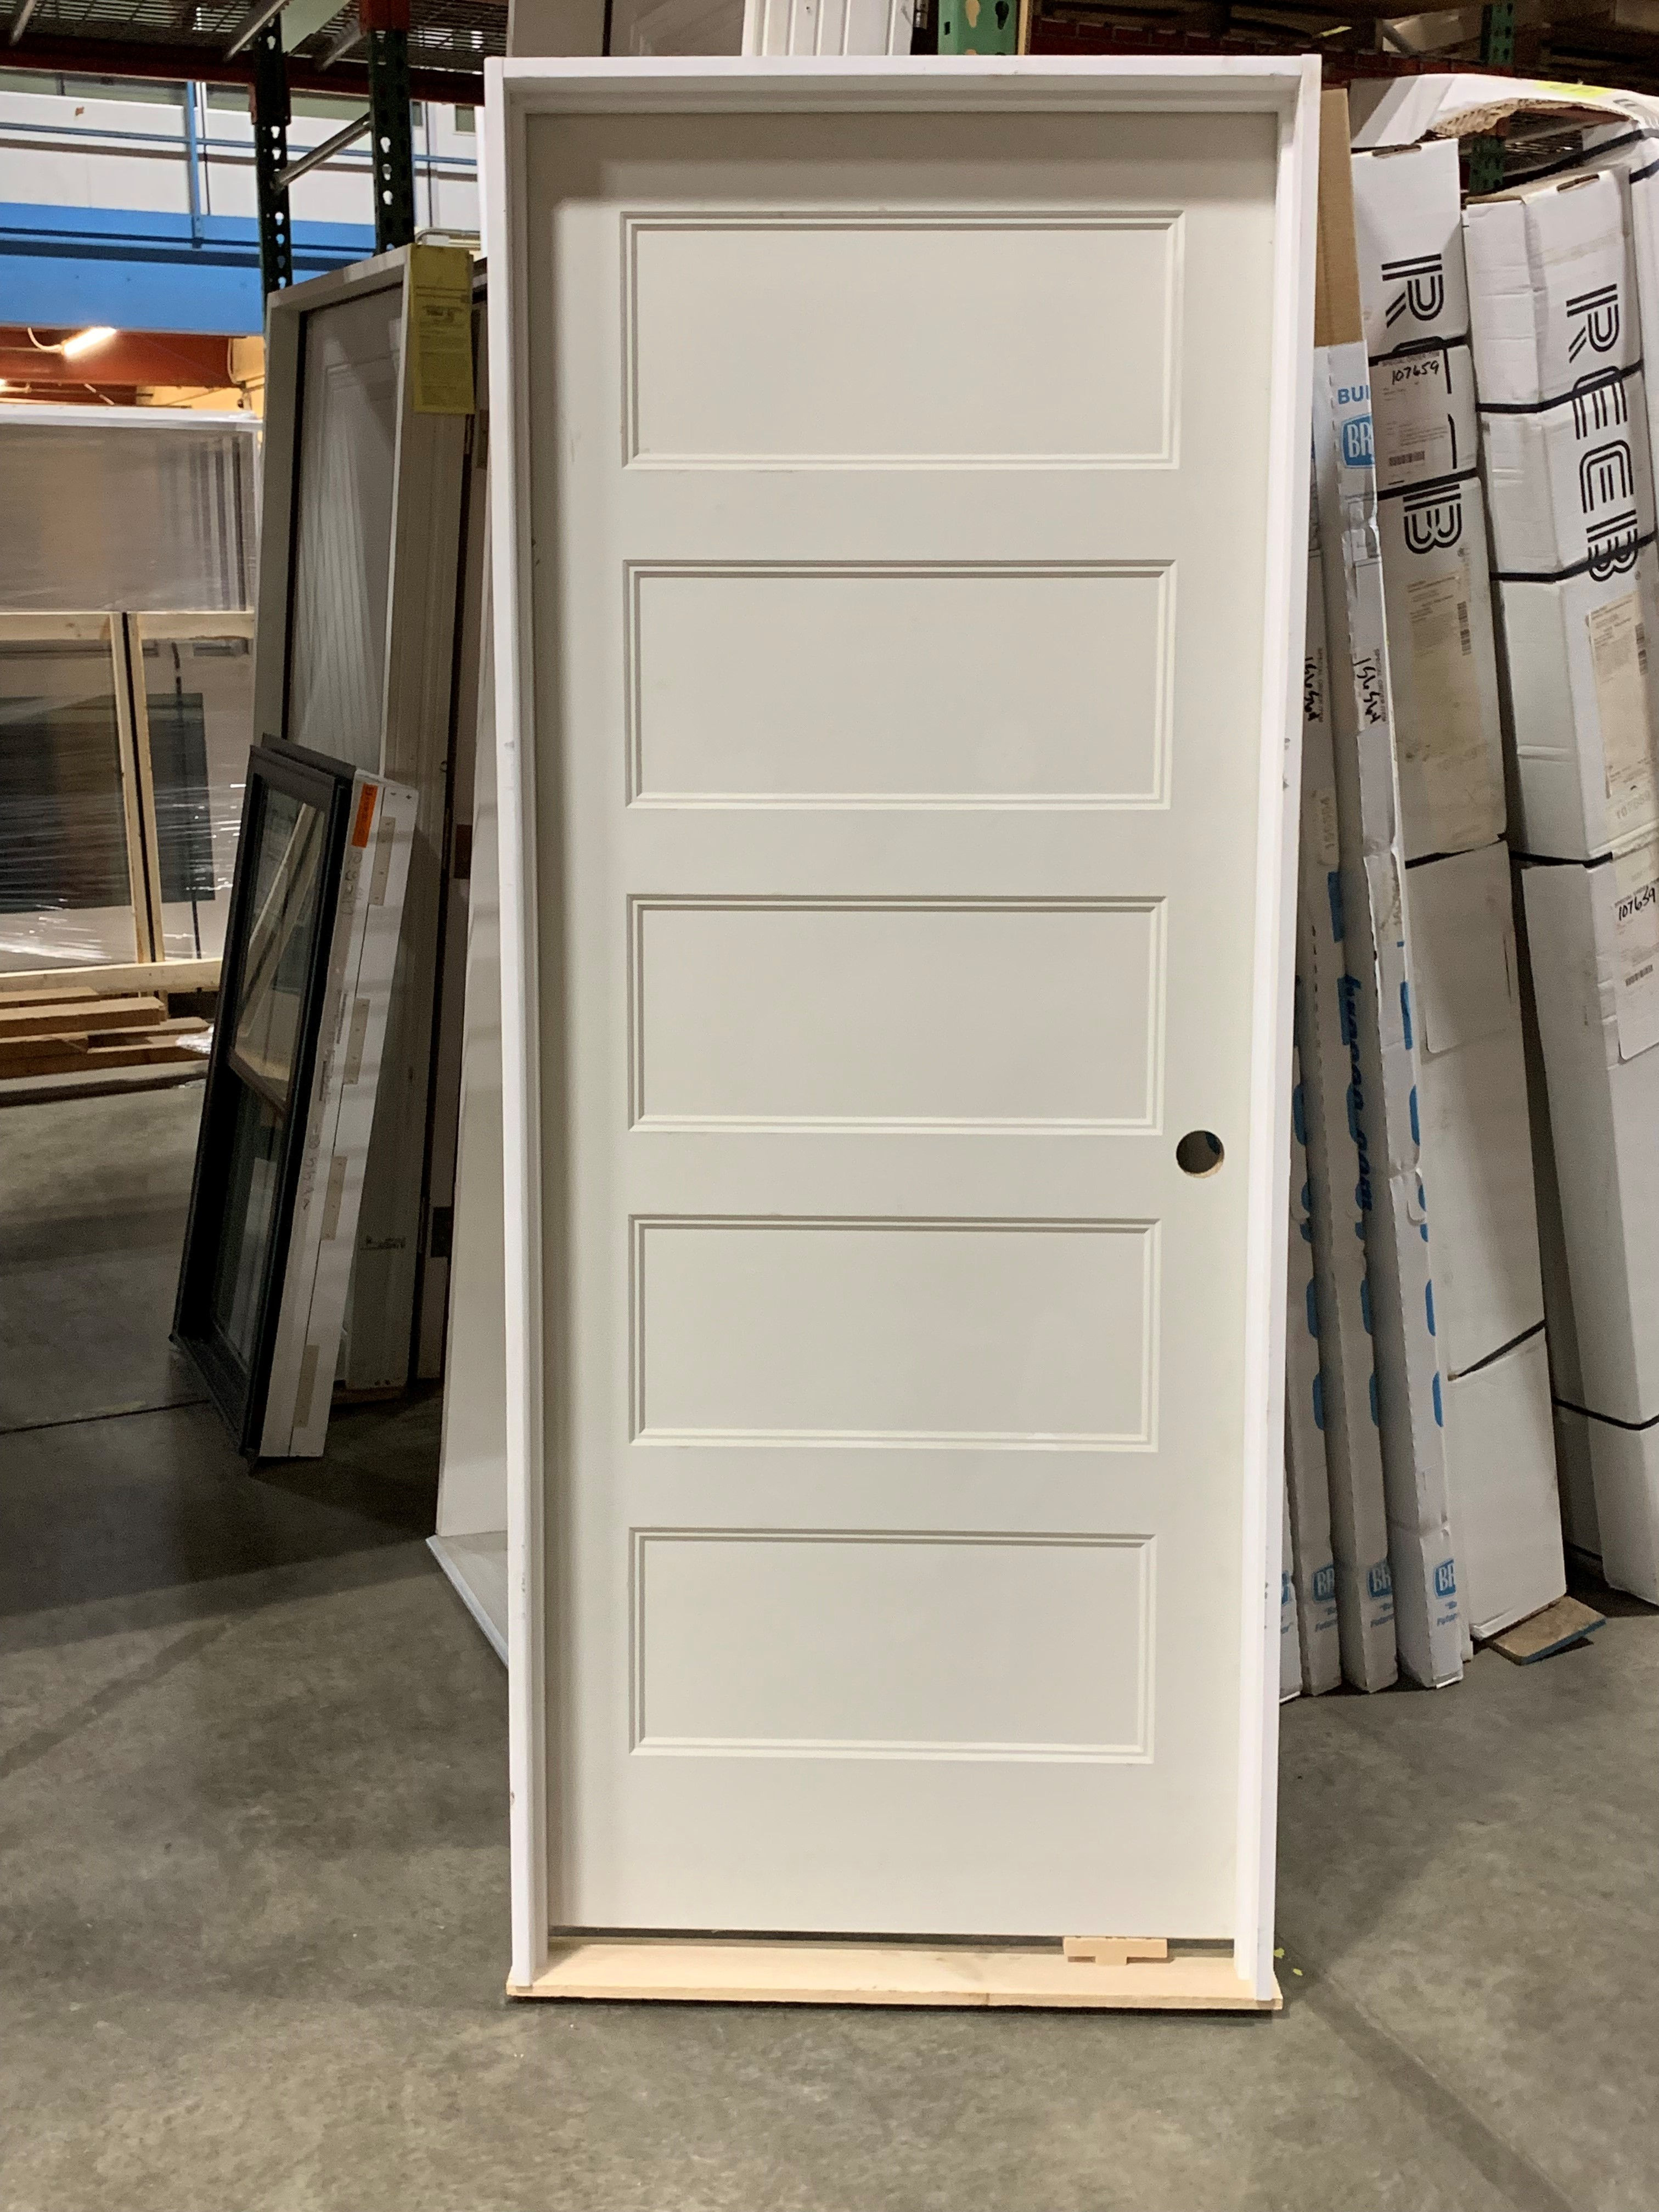 Brosco 5 panel 2868 LHIS Door